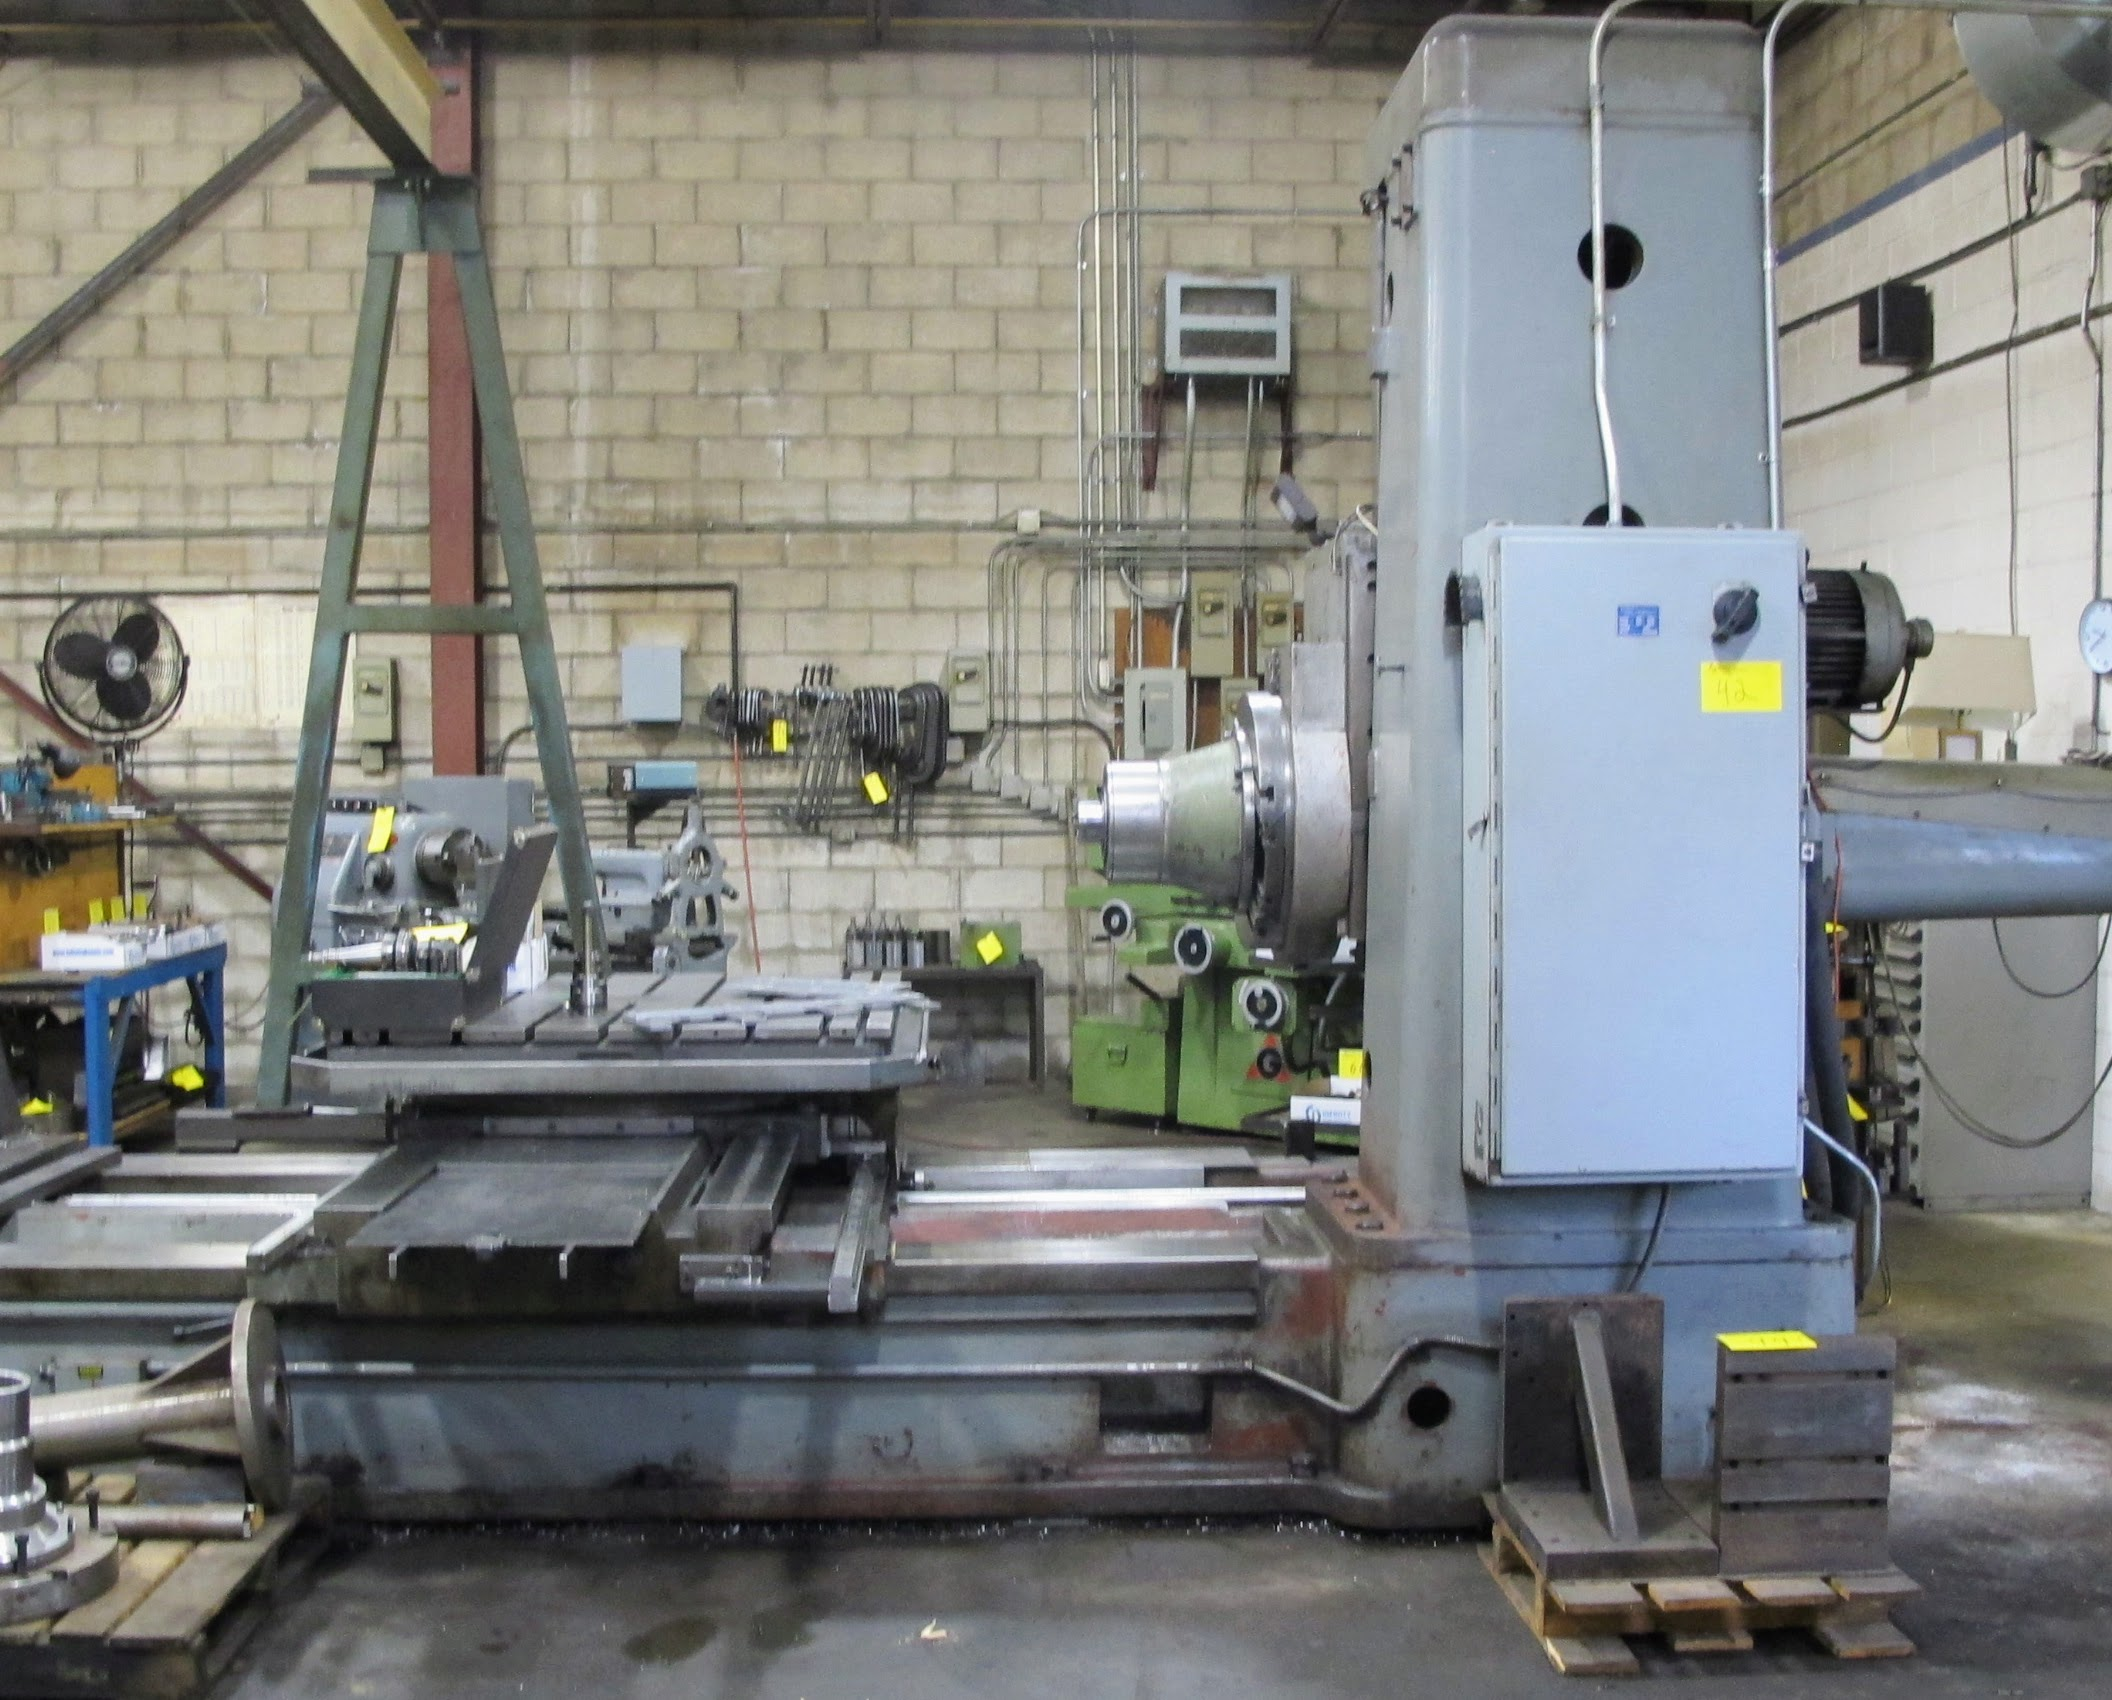 "TOS W100 HORIZONTAL BORING MILL, ACU-RITE 4-AXIS DRO, 4"" SPINDLE, 14 TO 1,120 RPM, 49"" X 49"" POWERED - Image 9 of 12"